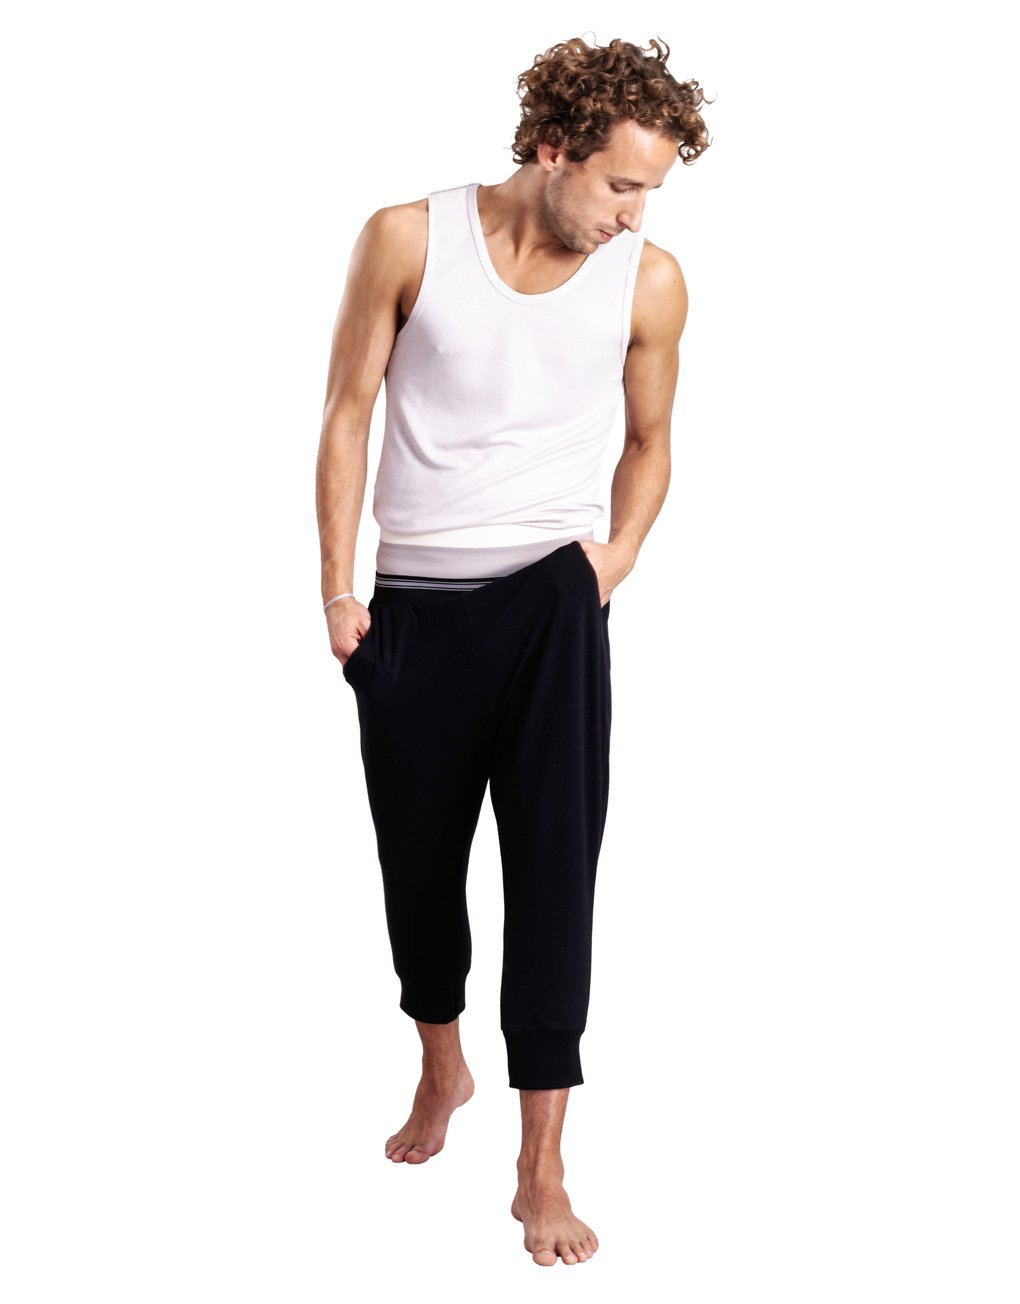 Moonlight 3/4 Unisex Cotton Joggers